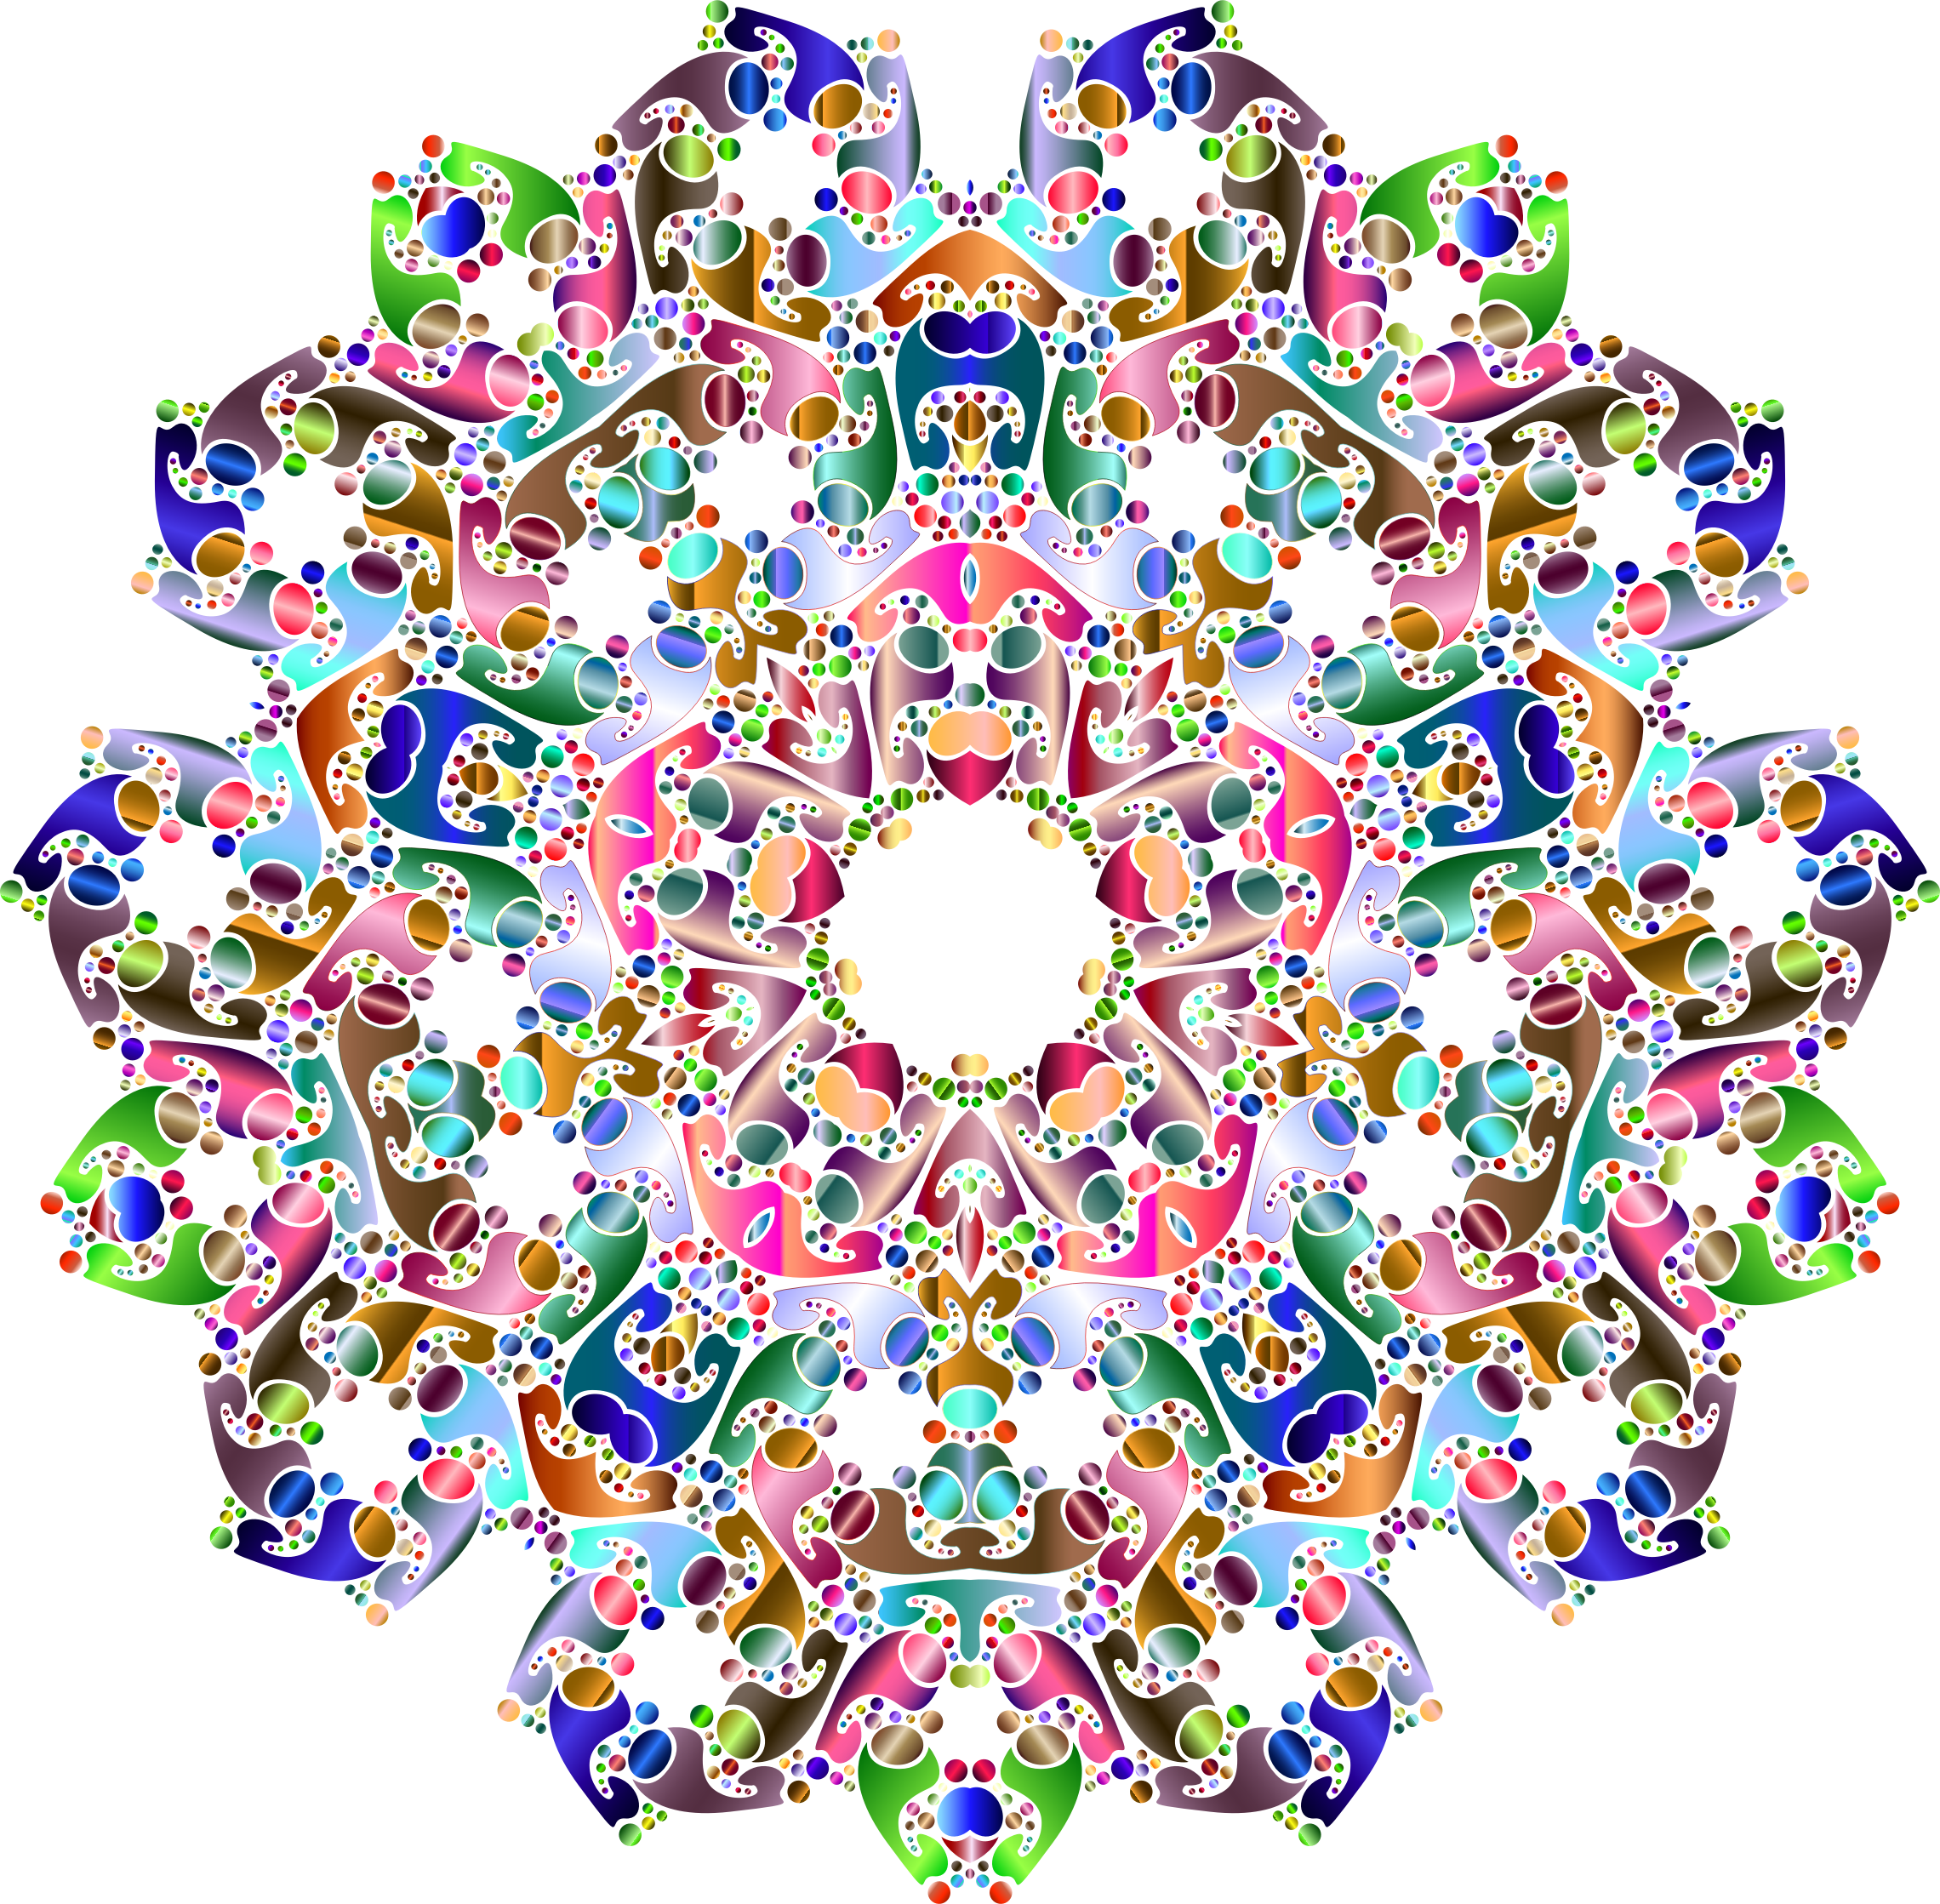 Hexagonal Tessellation Design 3 by GDJ